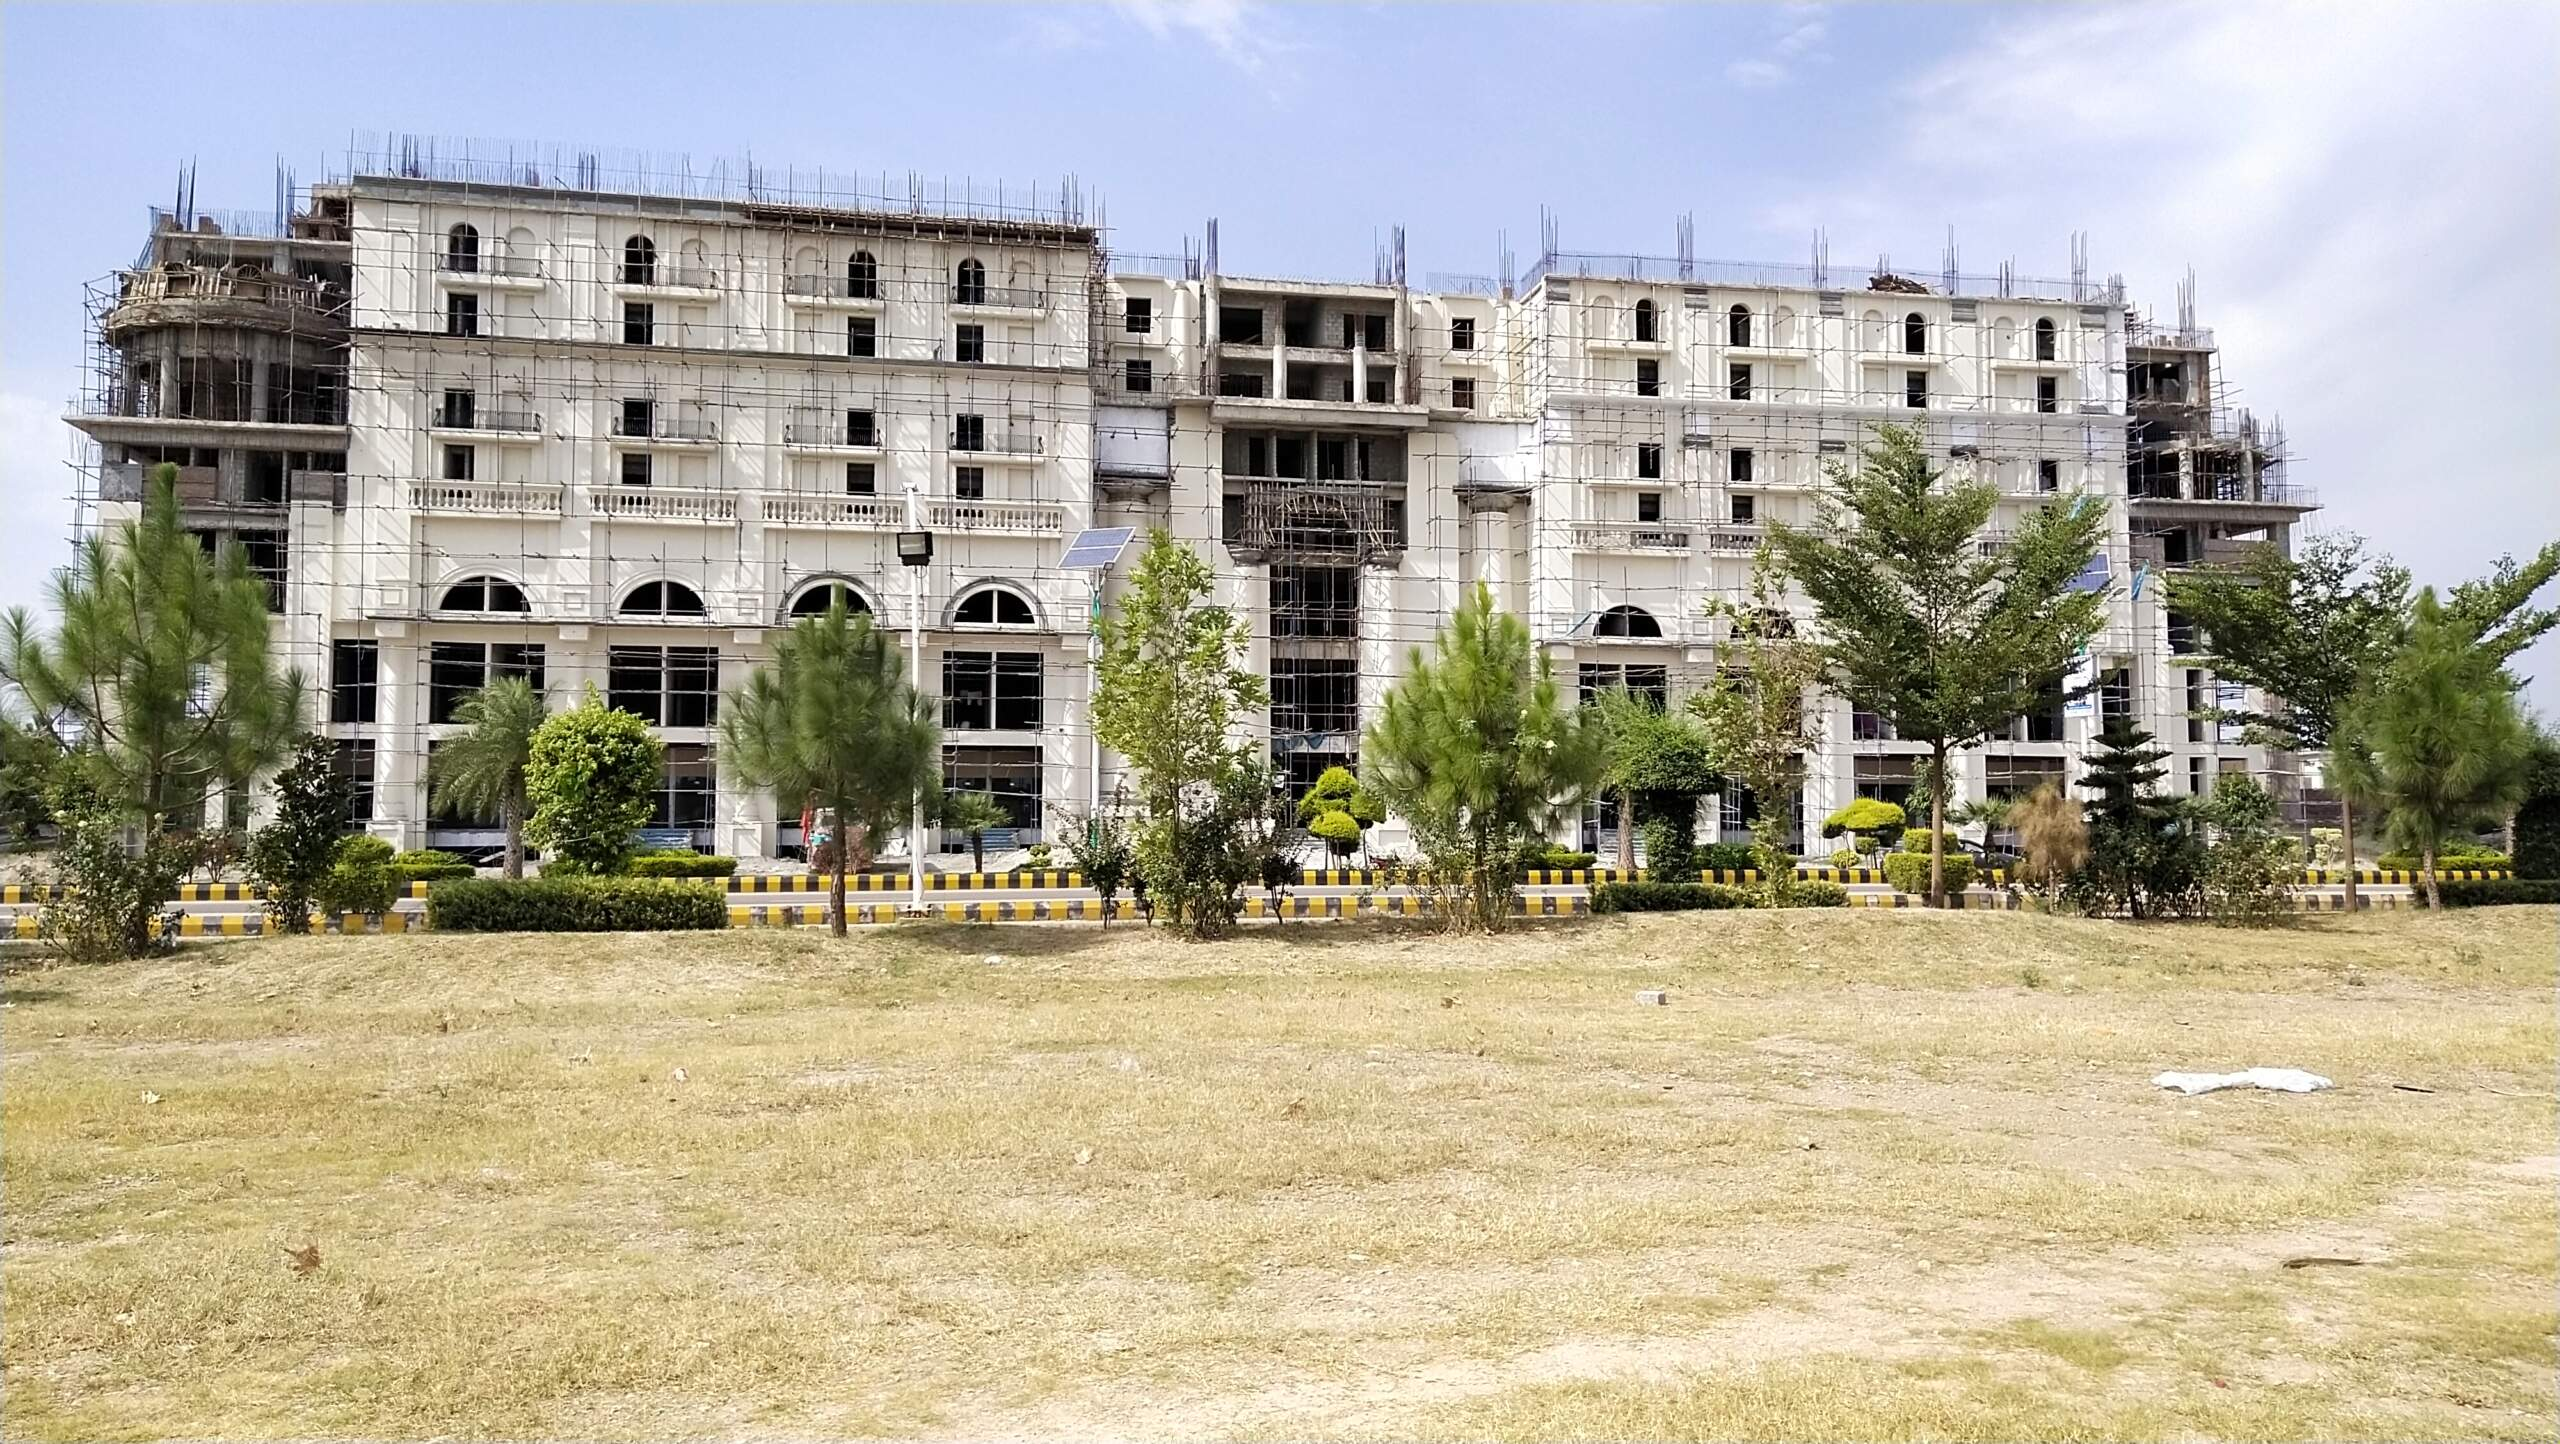 current construction status of gulberg heights .80% of construction is almost completed